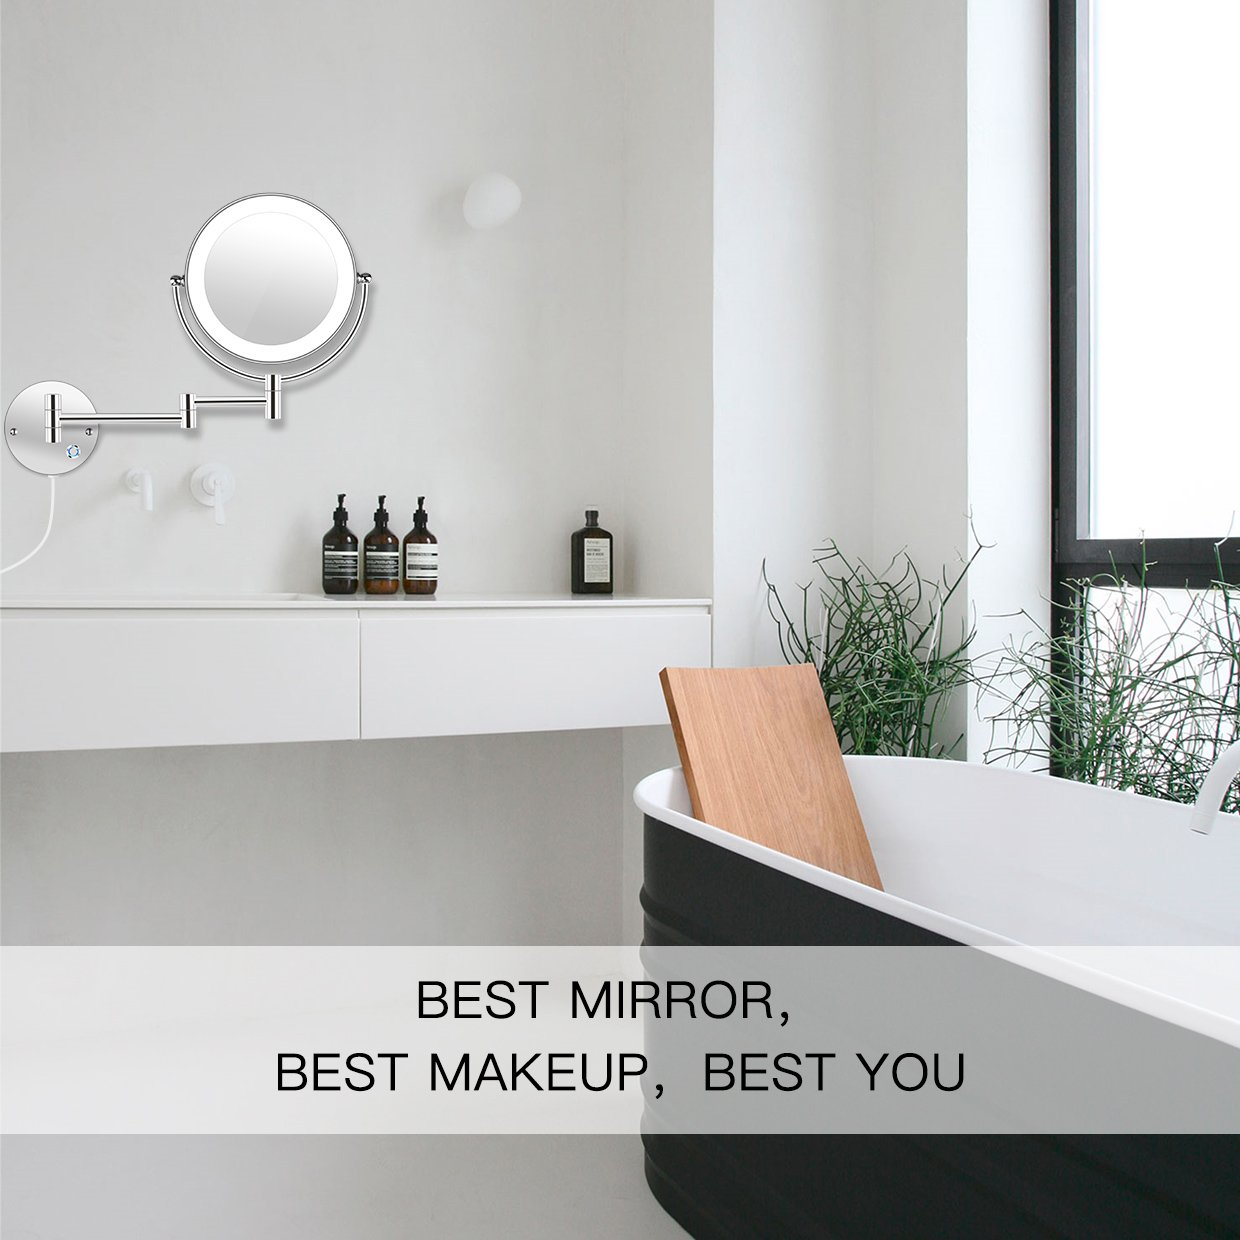 AmnoAmno 8.5'' LED Double Sided Swivel Wall Mount Vanity mirror-10x Magnification,13.7'' Extension,Touch Button Adjustable Light,Chromium,Shaving in Bedroom or Bathroom (8.5 inch)